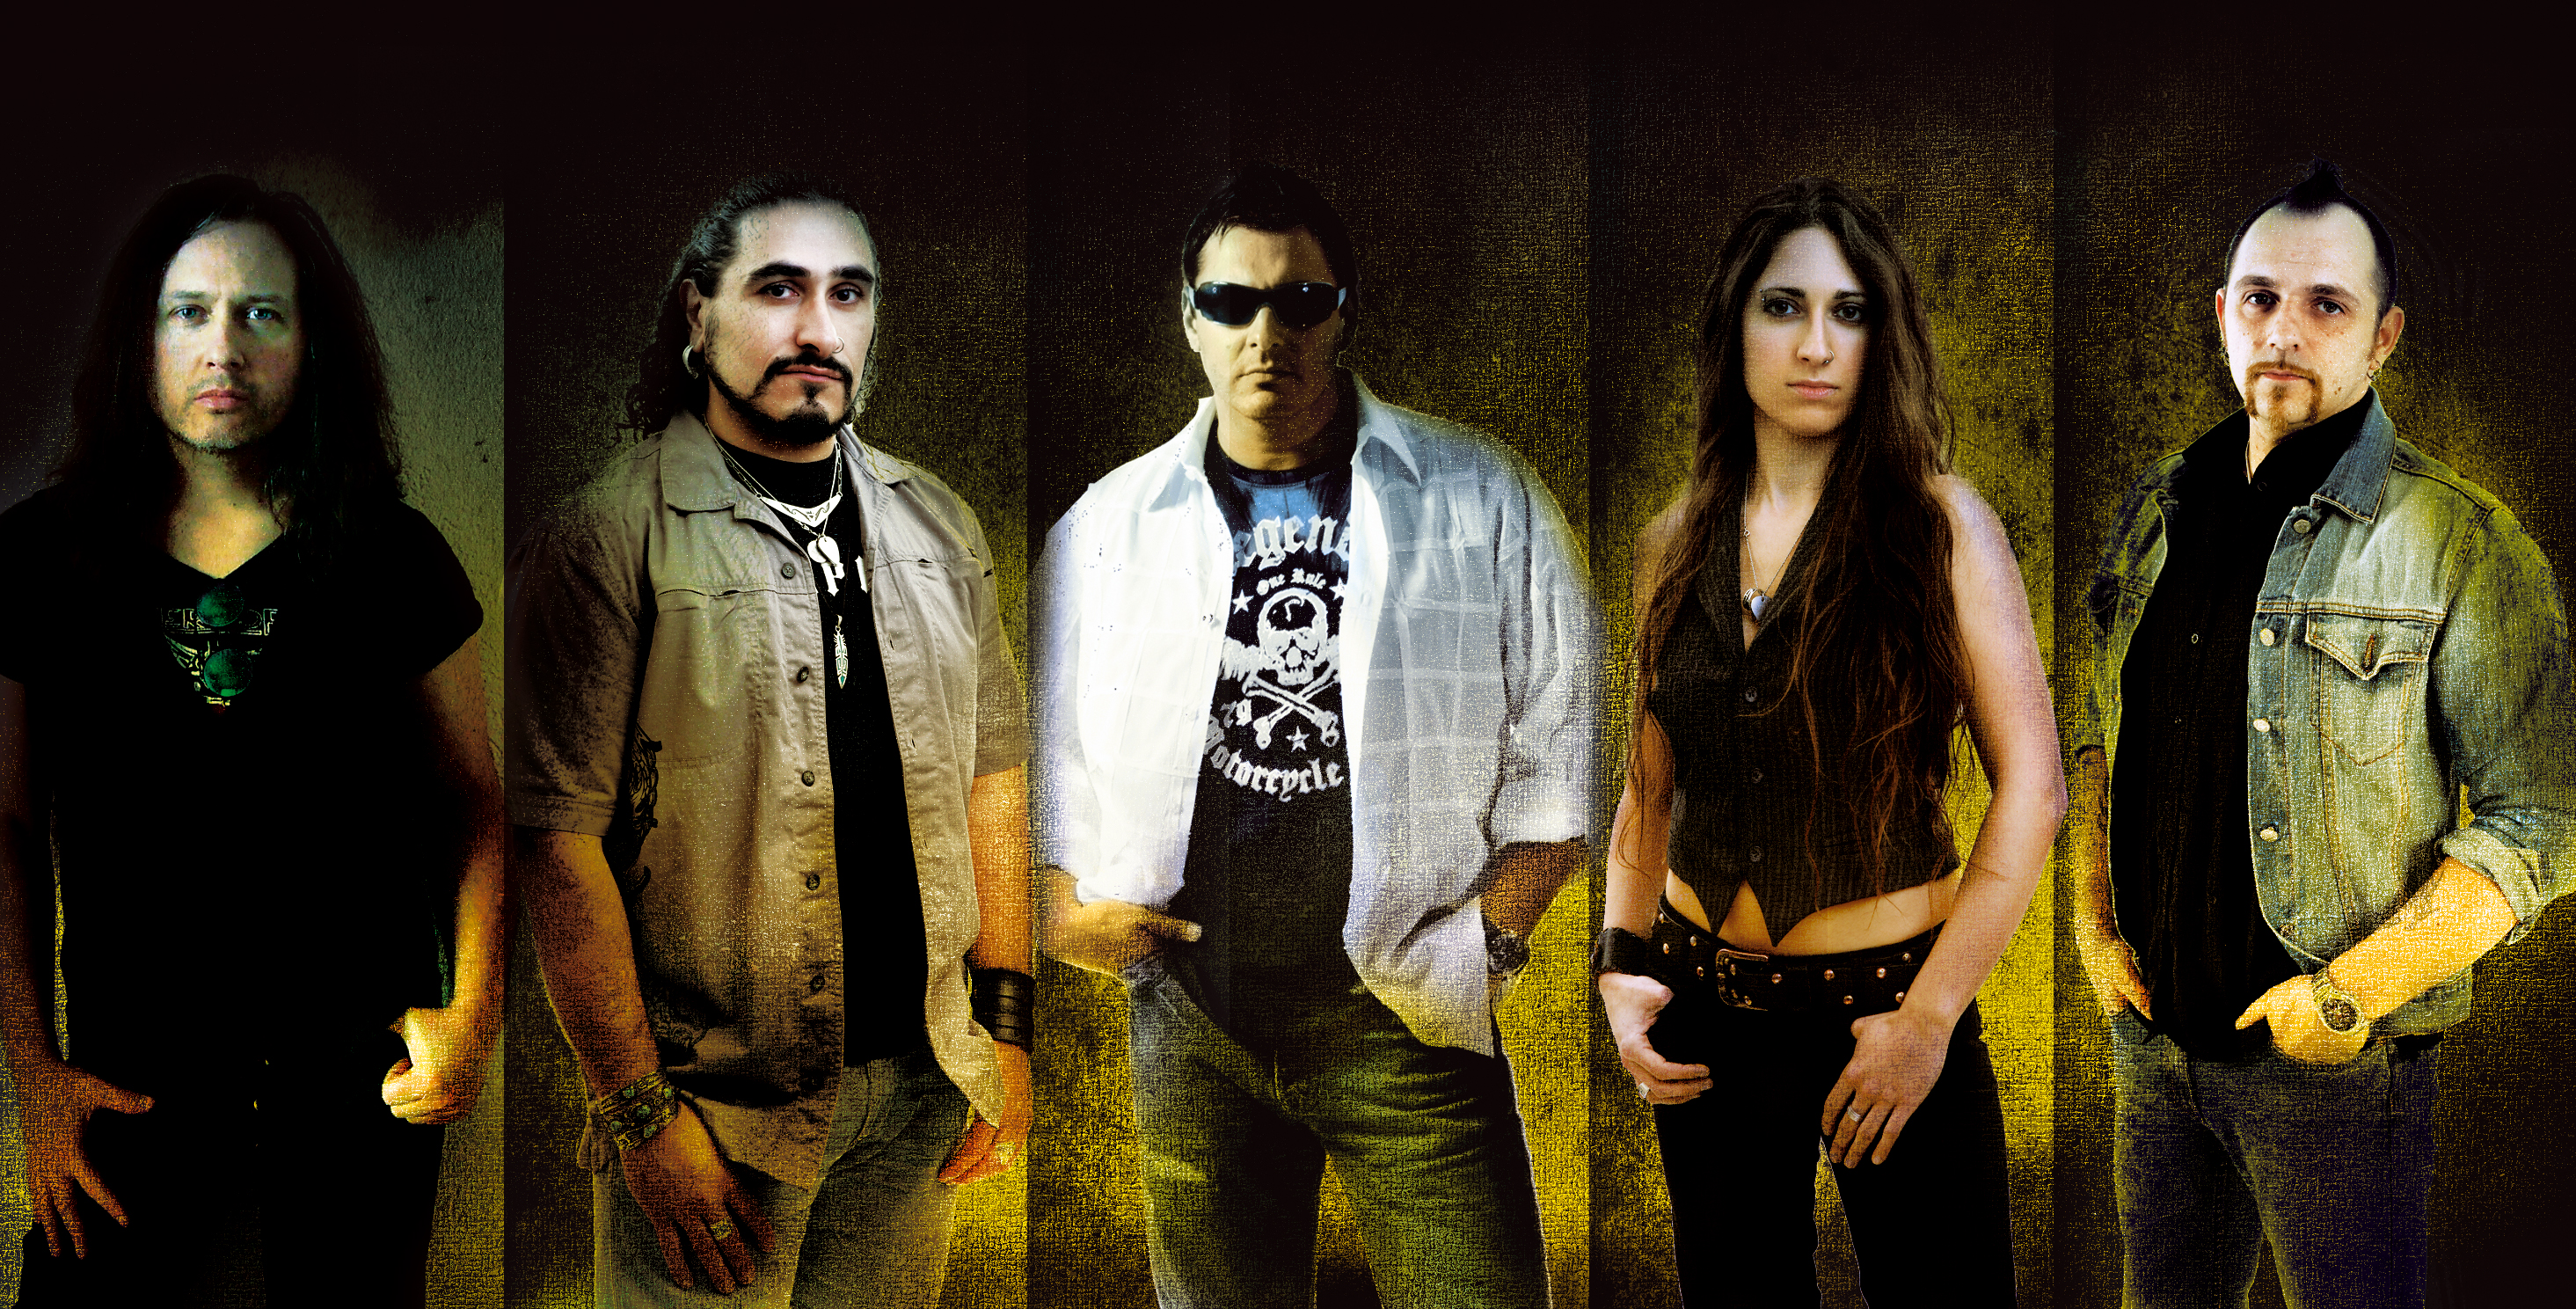 Rock Reviews dirt image: https://metalodyssey.files.wordpress.com/2012/06/hardline-band-promo-pic-2012-1.jpg